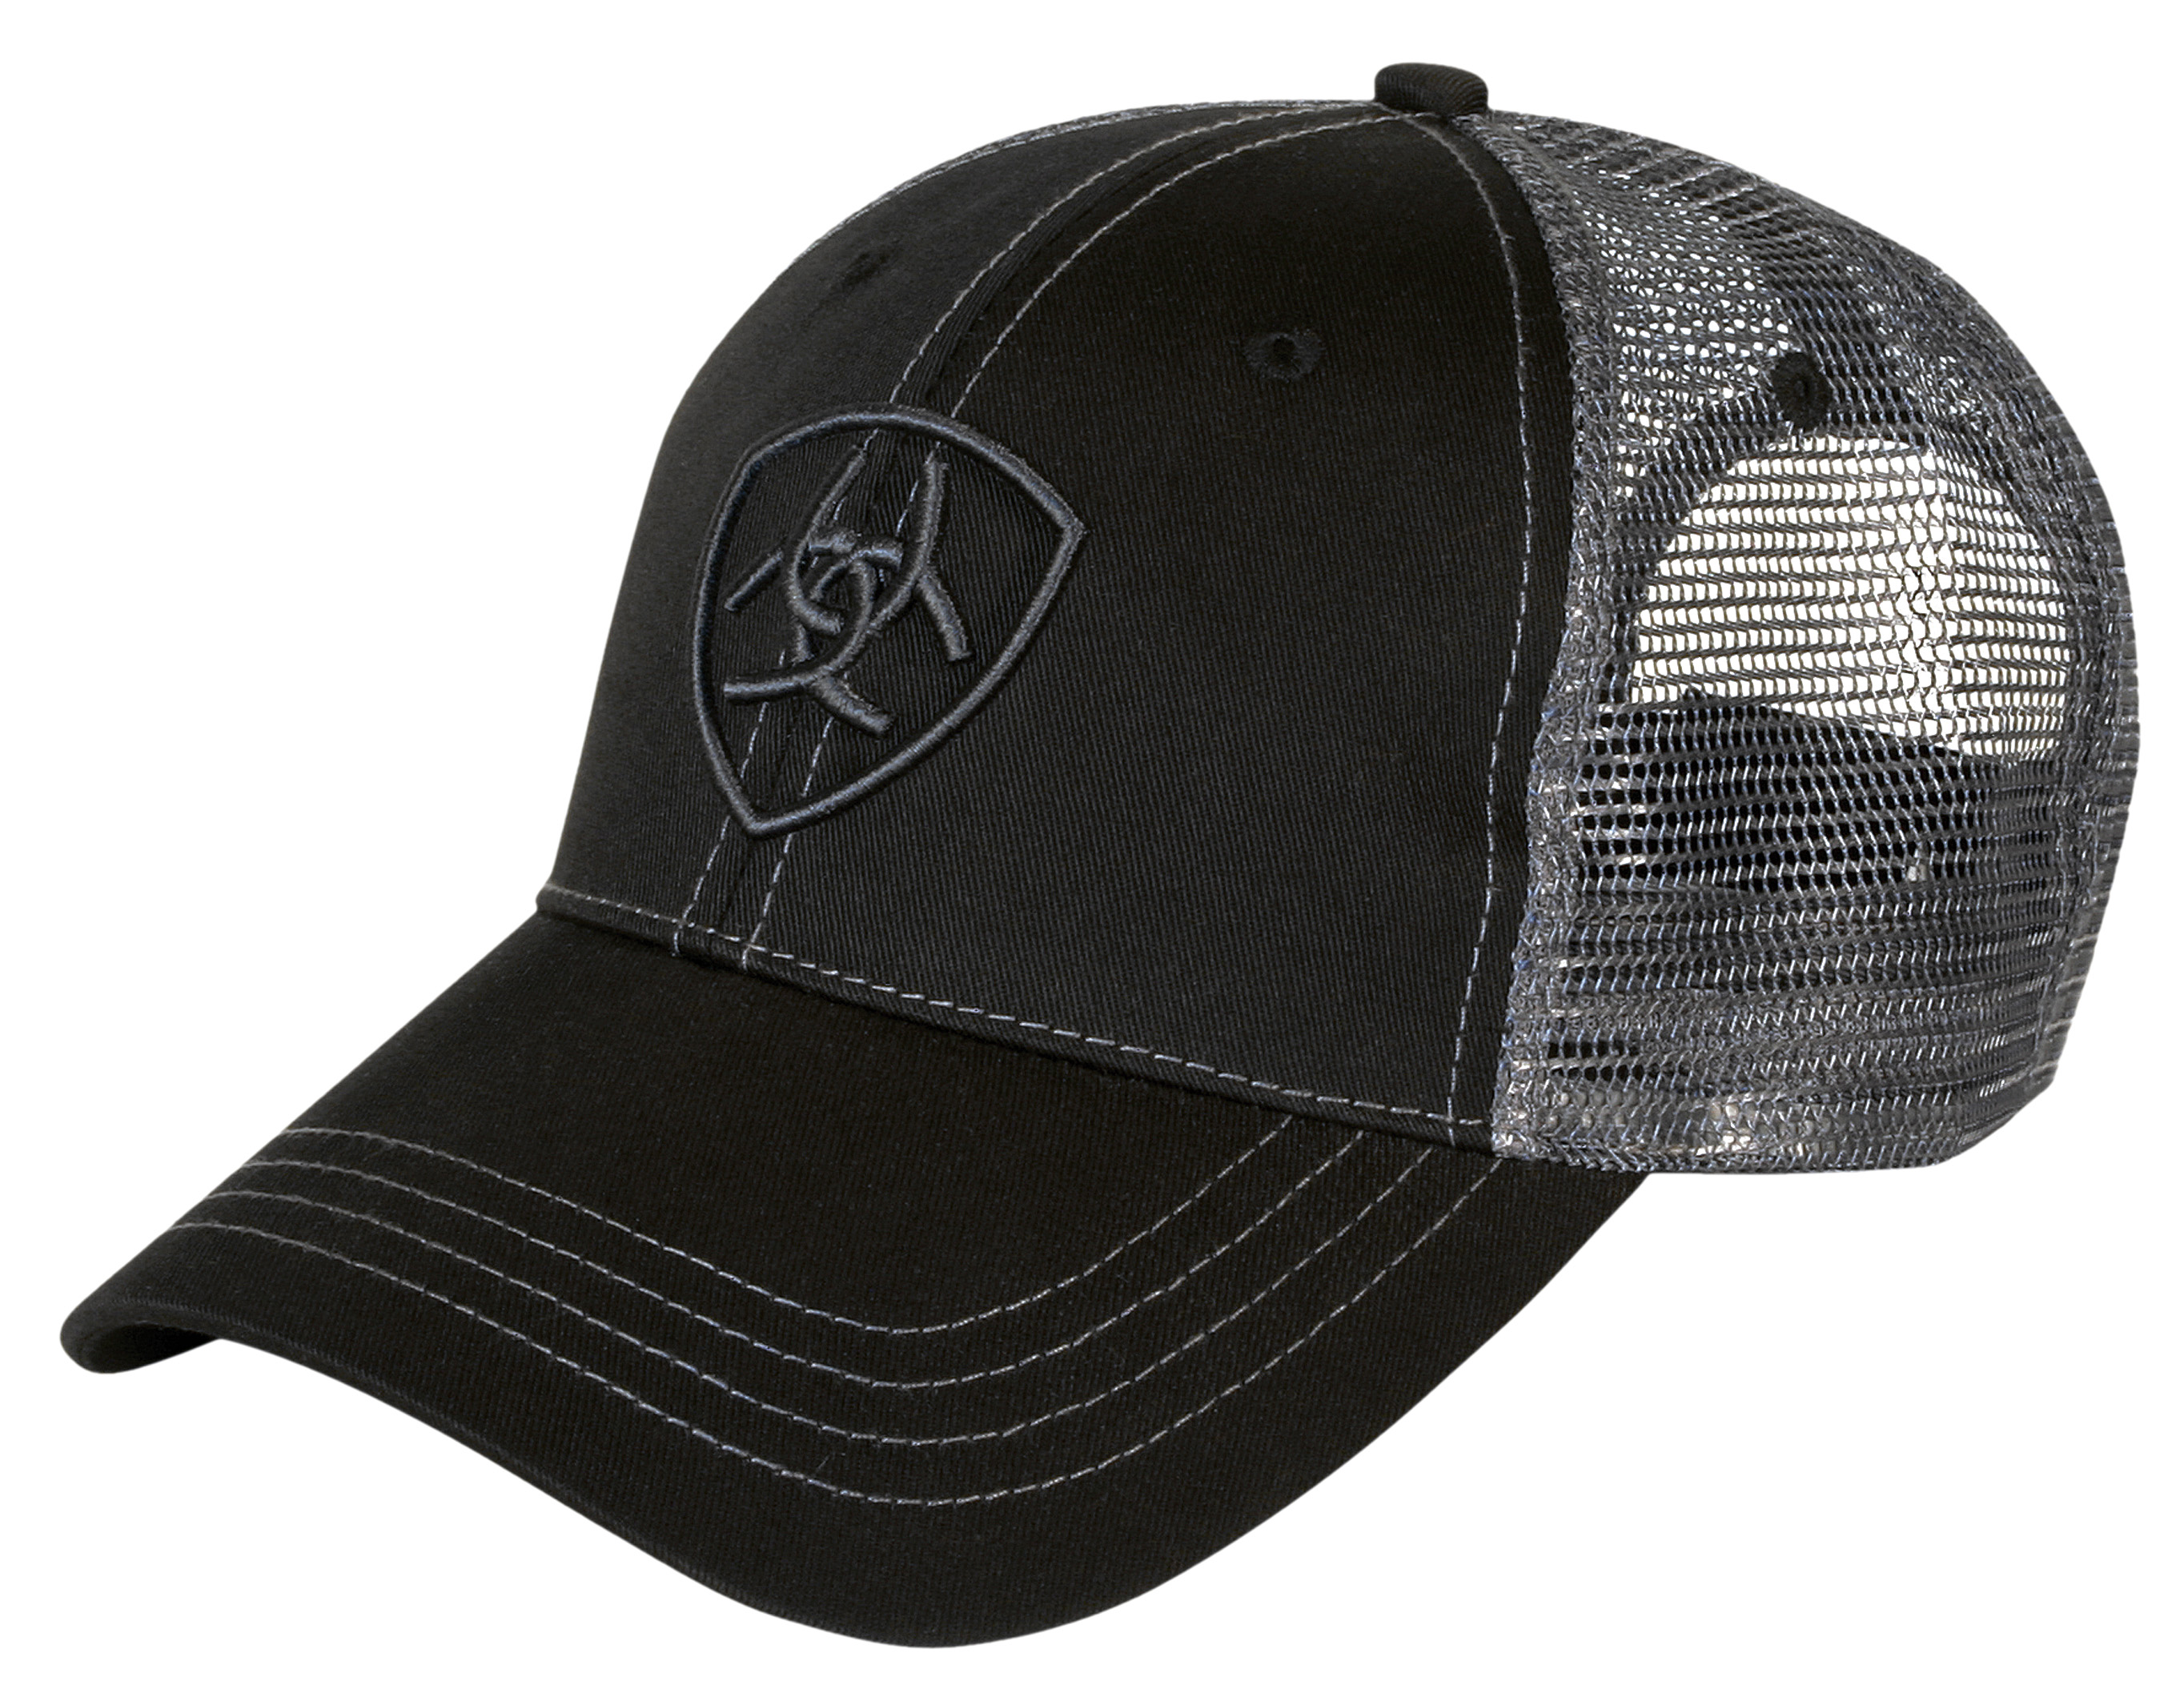 00ea5c4f Ariat Truckers Cap - Black/Charcoal - Donohues, City & Country Gear